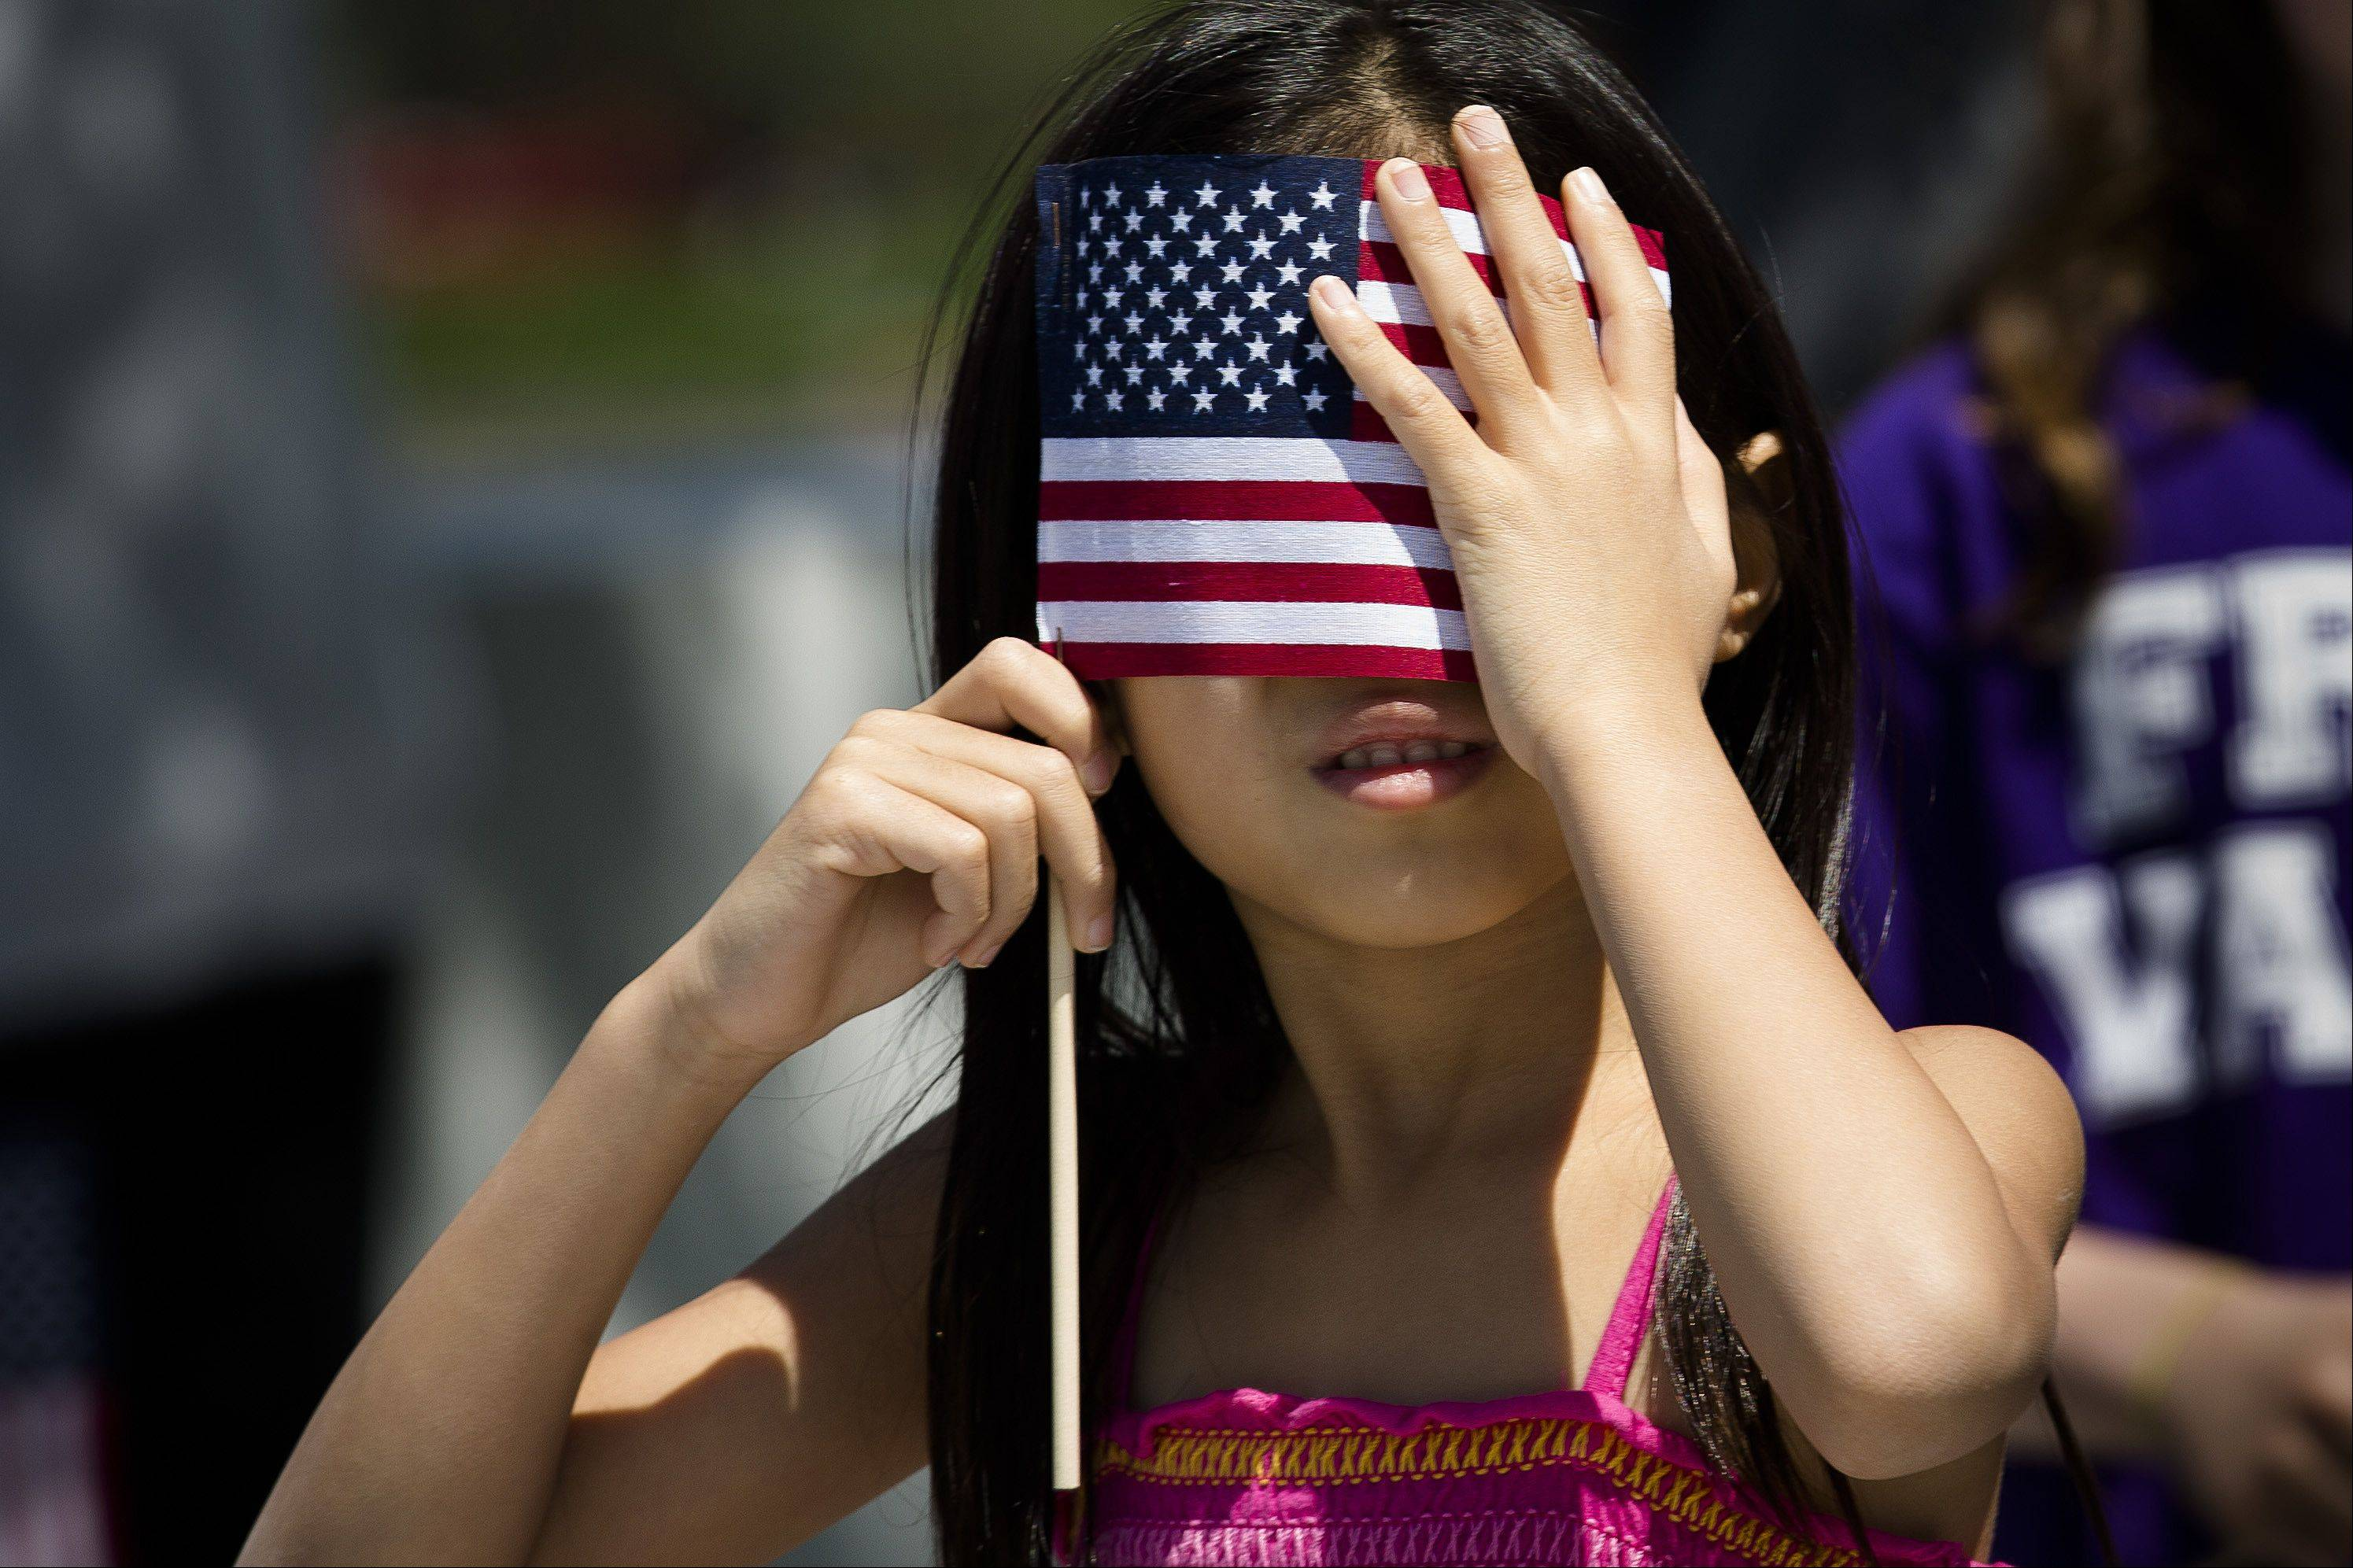 A young spectator shields her eyes from the sun with an American flag during a Memorial Day wreath laying at the Franklin D. Roosevelt Four Freedoms Park on Roosevelt Island, Monday, May 27, 2013, in New York.